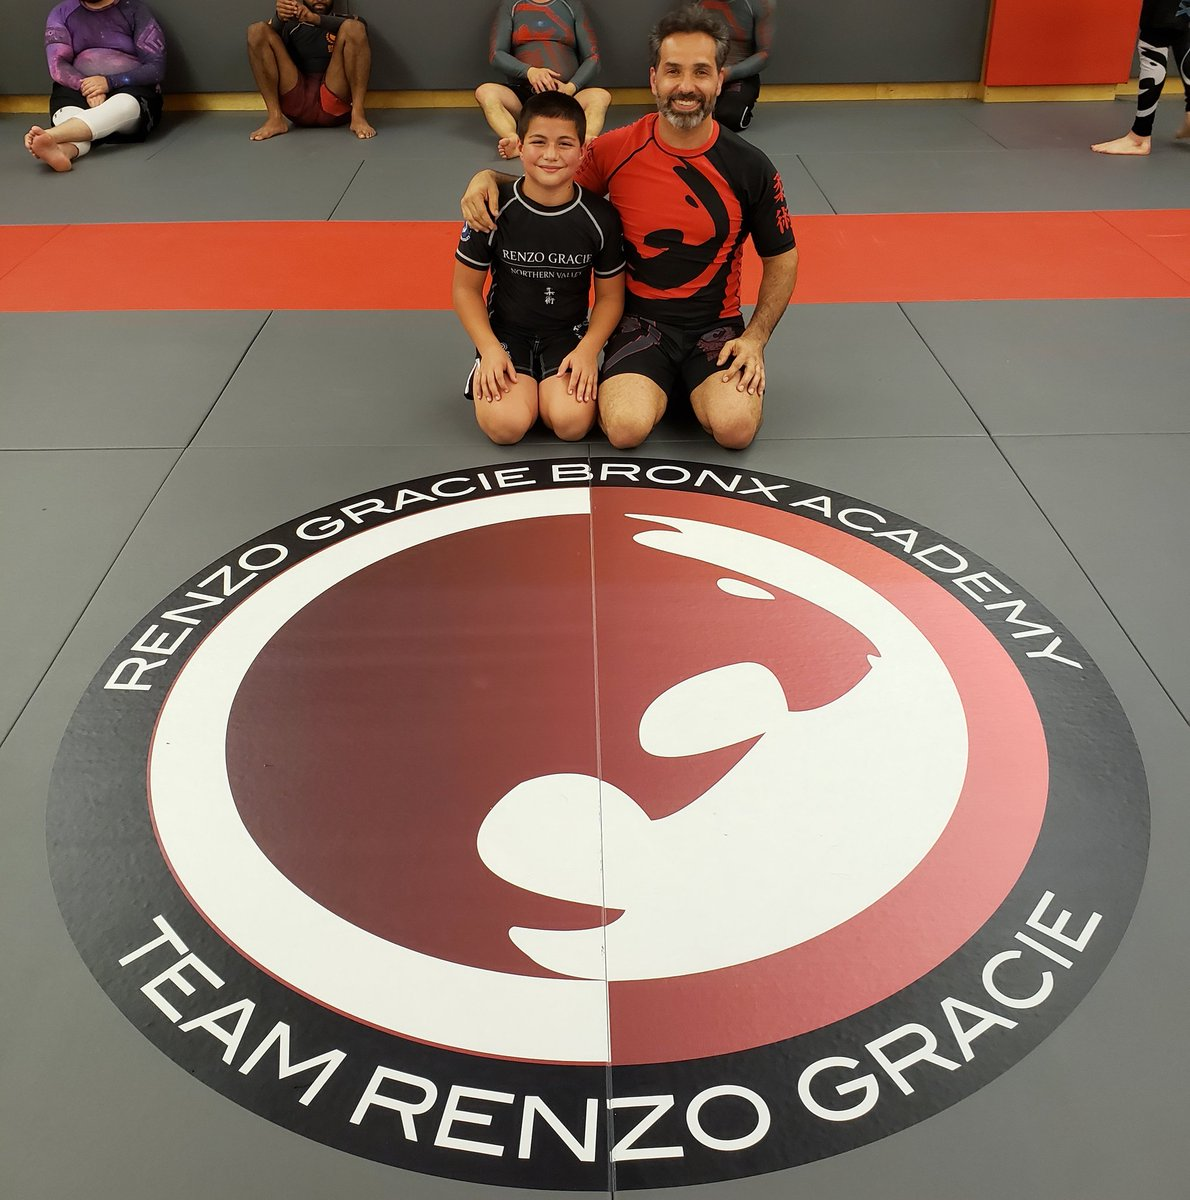 Johnny Underhooks came to train with me tonight. I'm sure this is the first of many more sessions to come in our future. John is 1 of my 9 nephews & nieces who train Brazilian Jiu-Jitsu. #famiglia #BJJ #TeamRenzoGracie #EveryDayPorrada #porra #myguy https://t.co/dJAX0HvNry